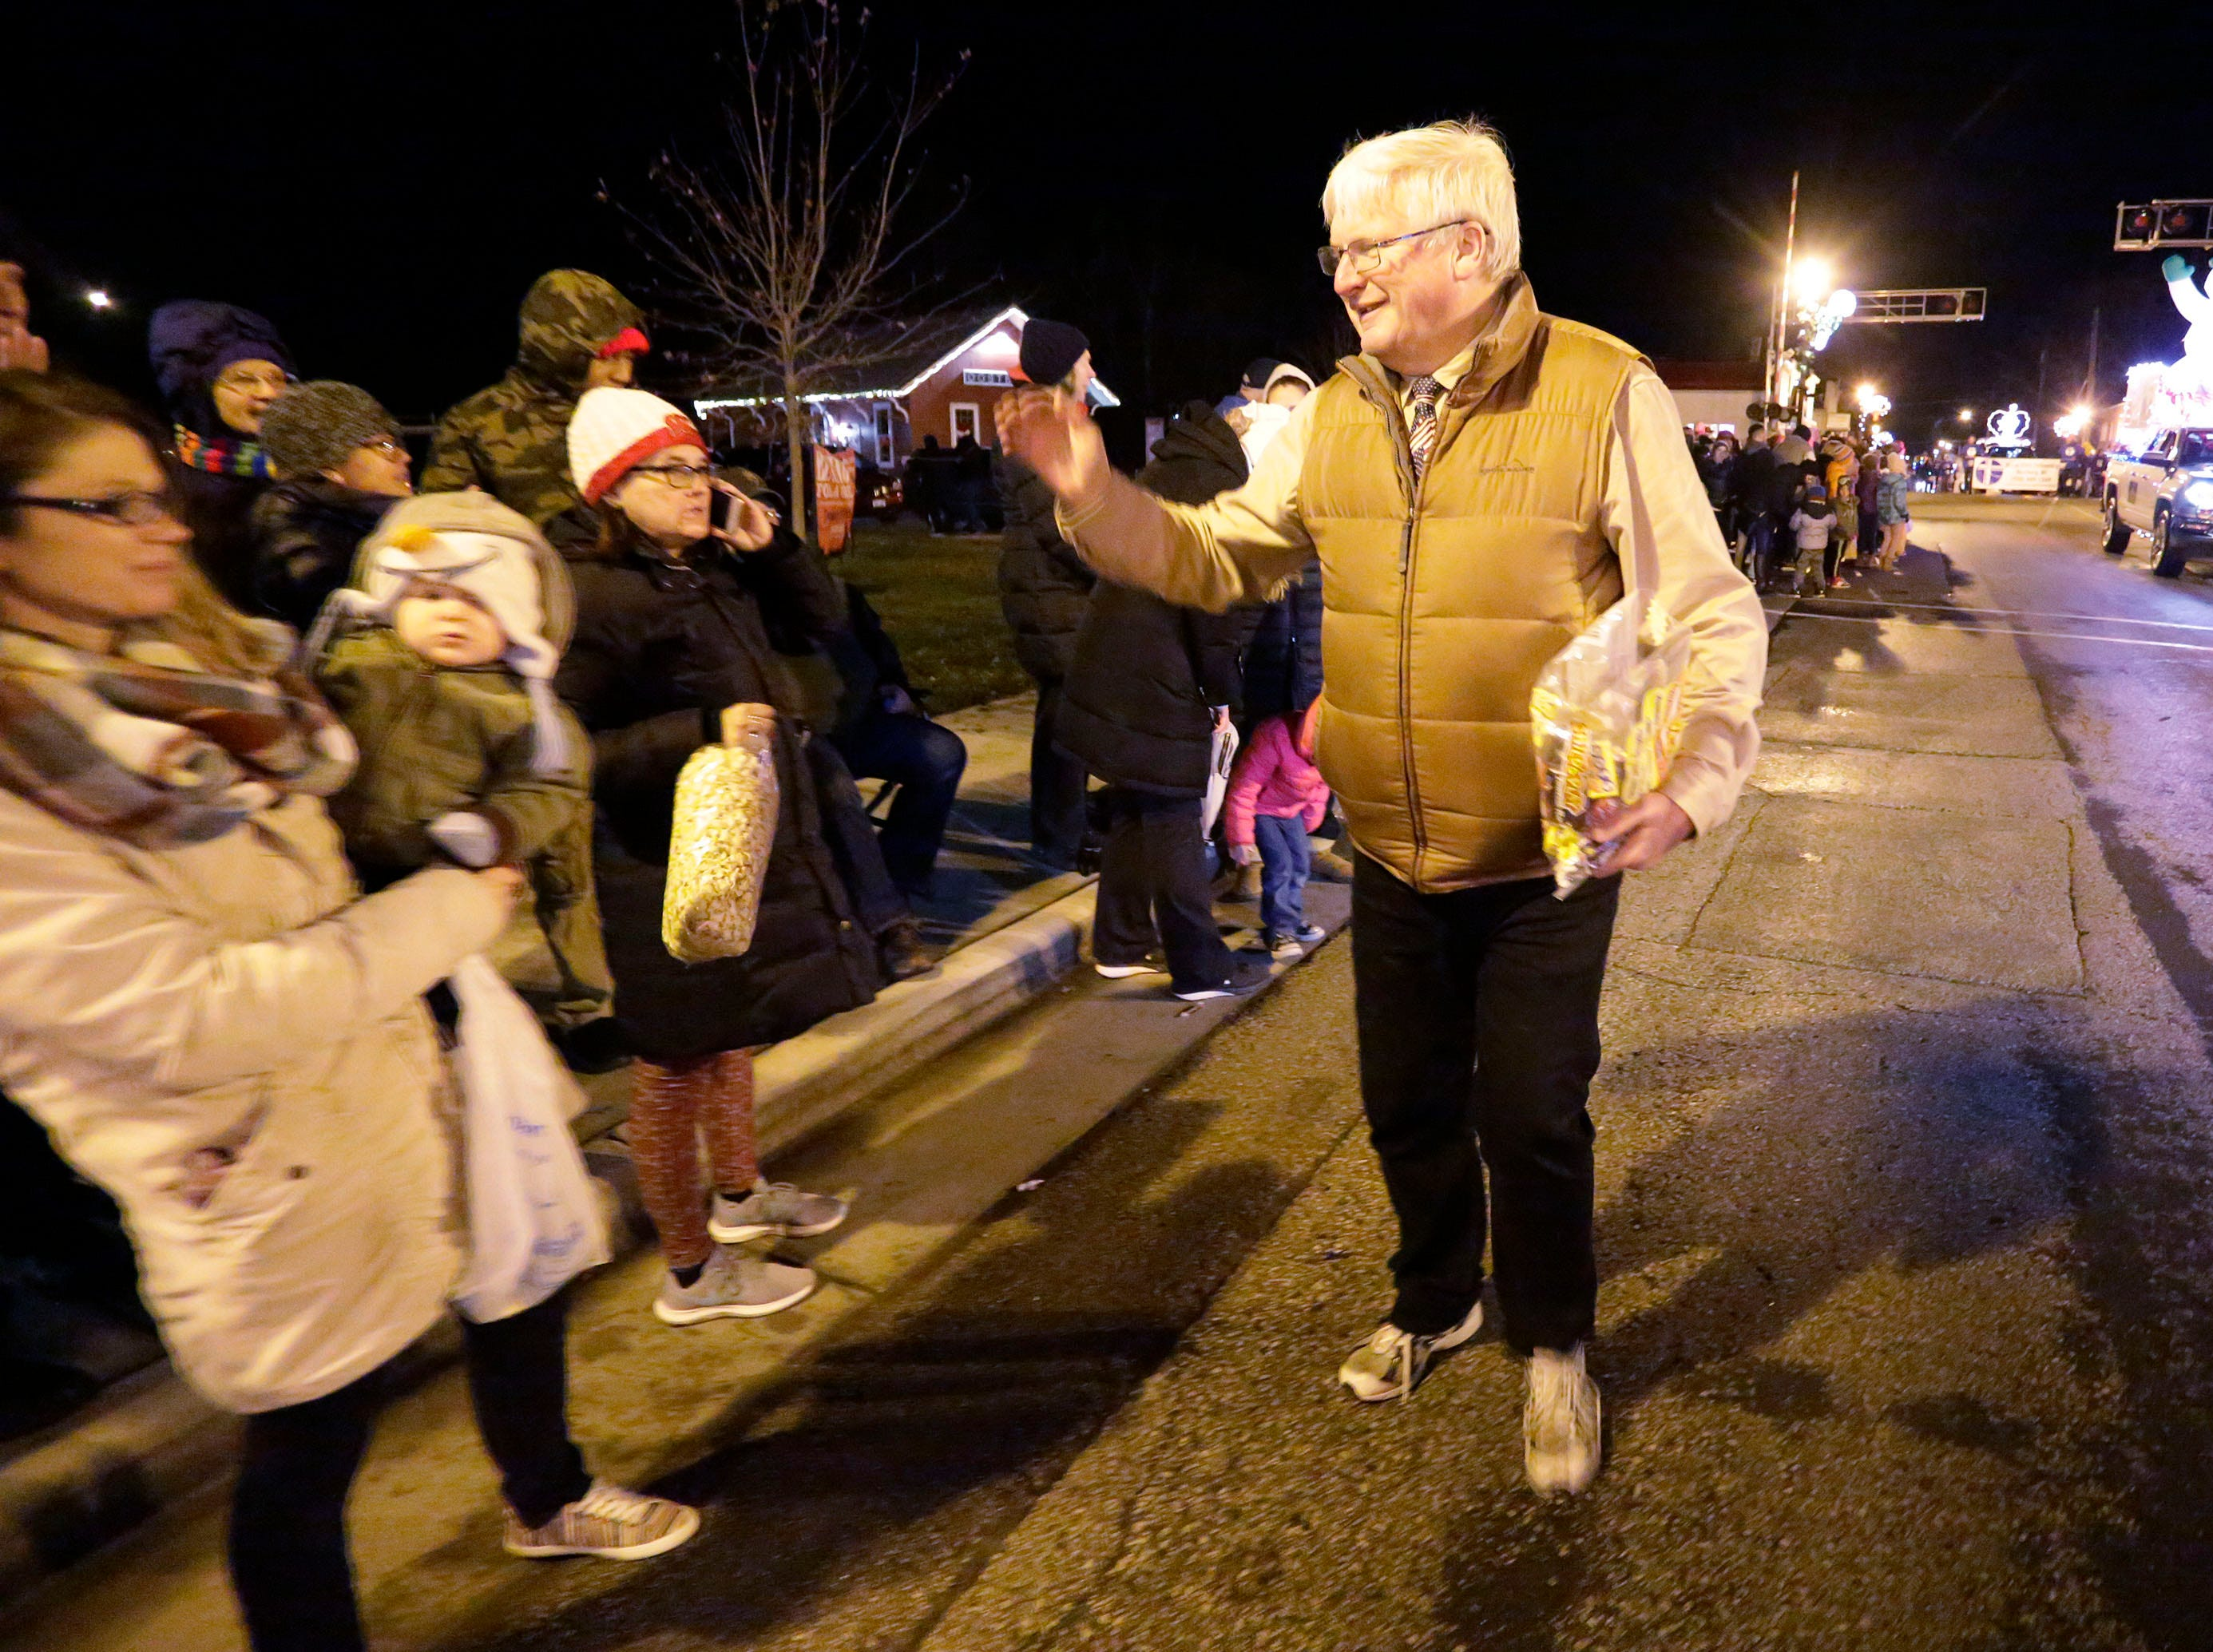 U.S. Representative Glenn Grothman waves to people along the route at the Oostburg Christmas Parade, Saturday, November 24, 2018, in Oostburg, Wis.